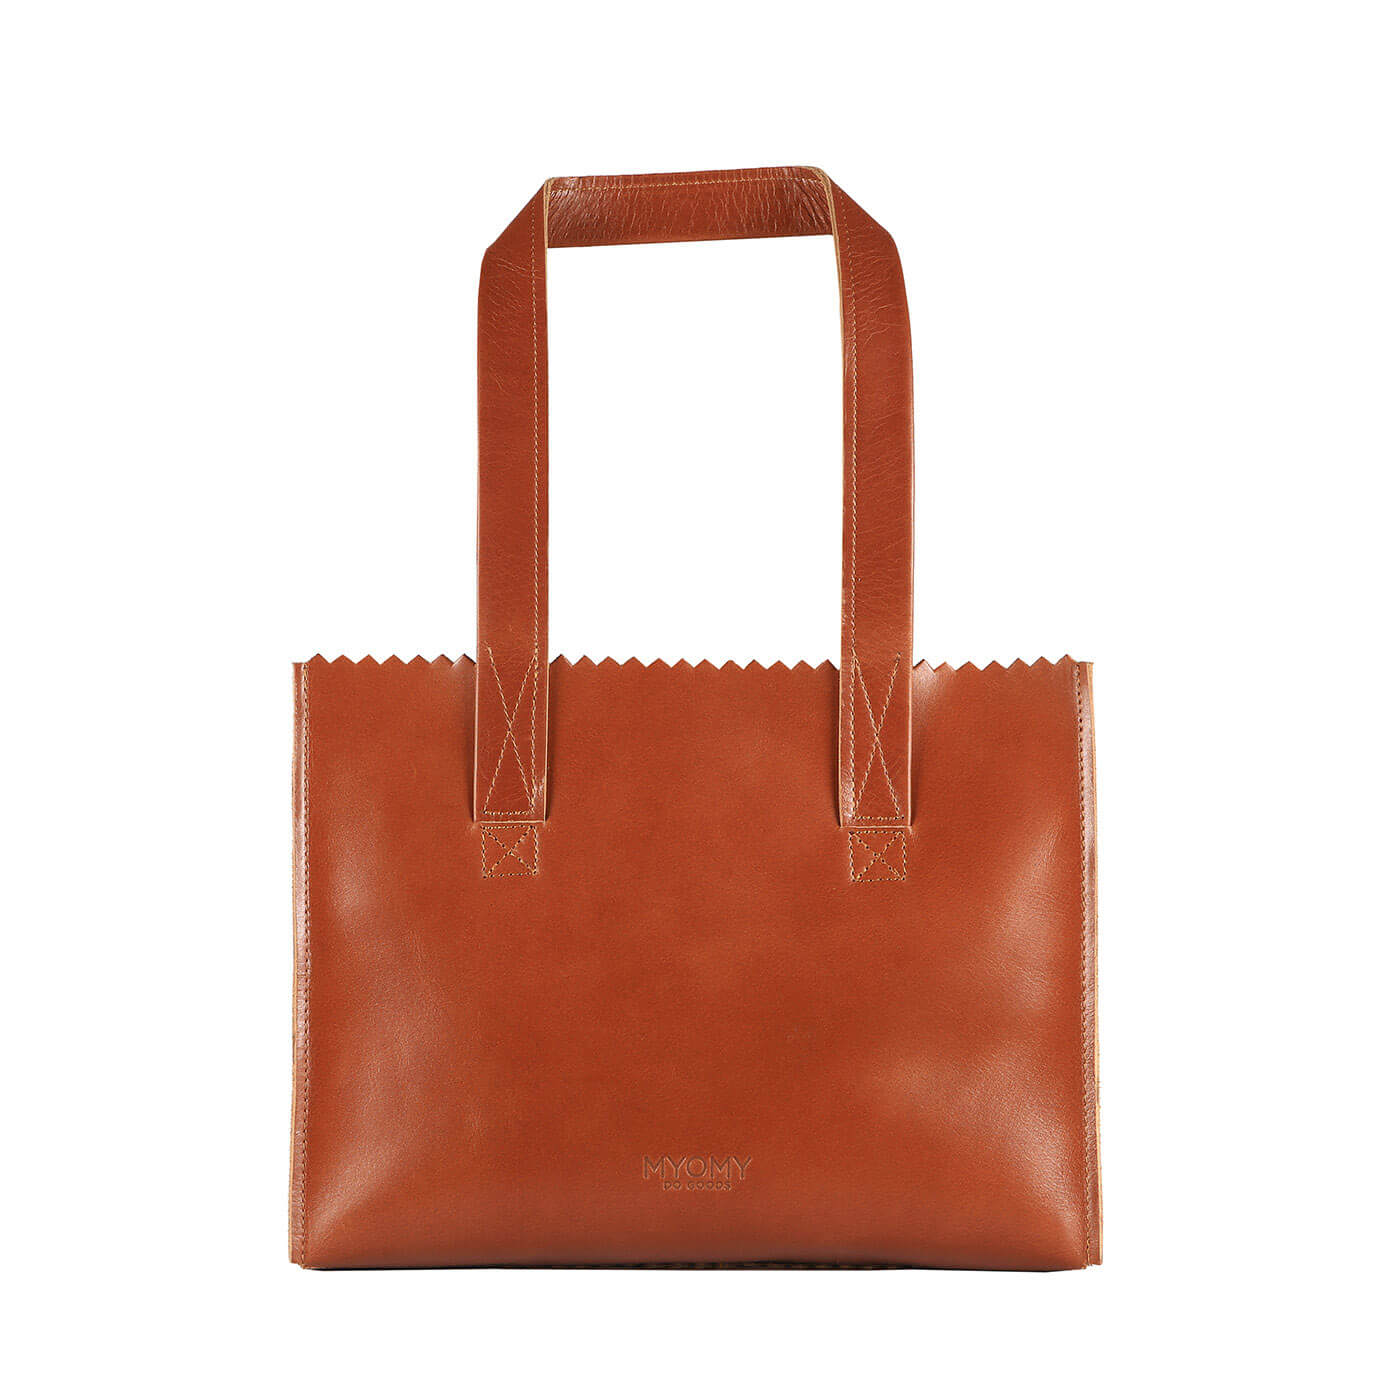 [PRE-ORDER] MY PAPER BAG Handbag – hunter waxy cognac